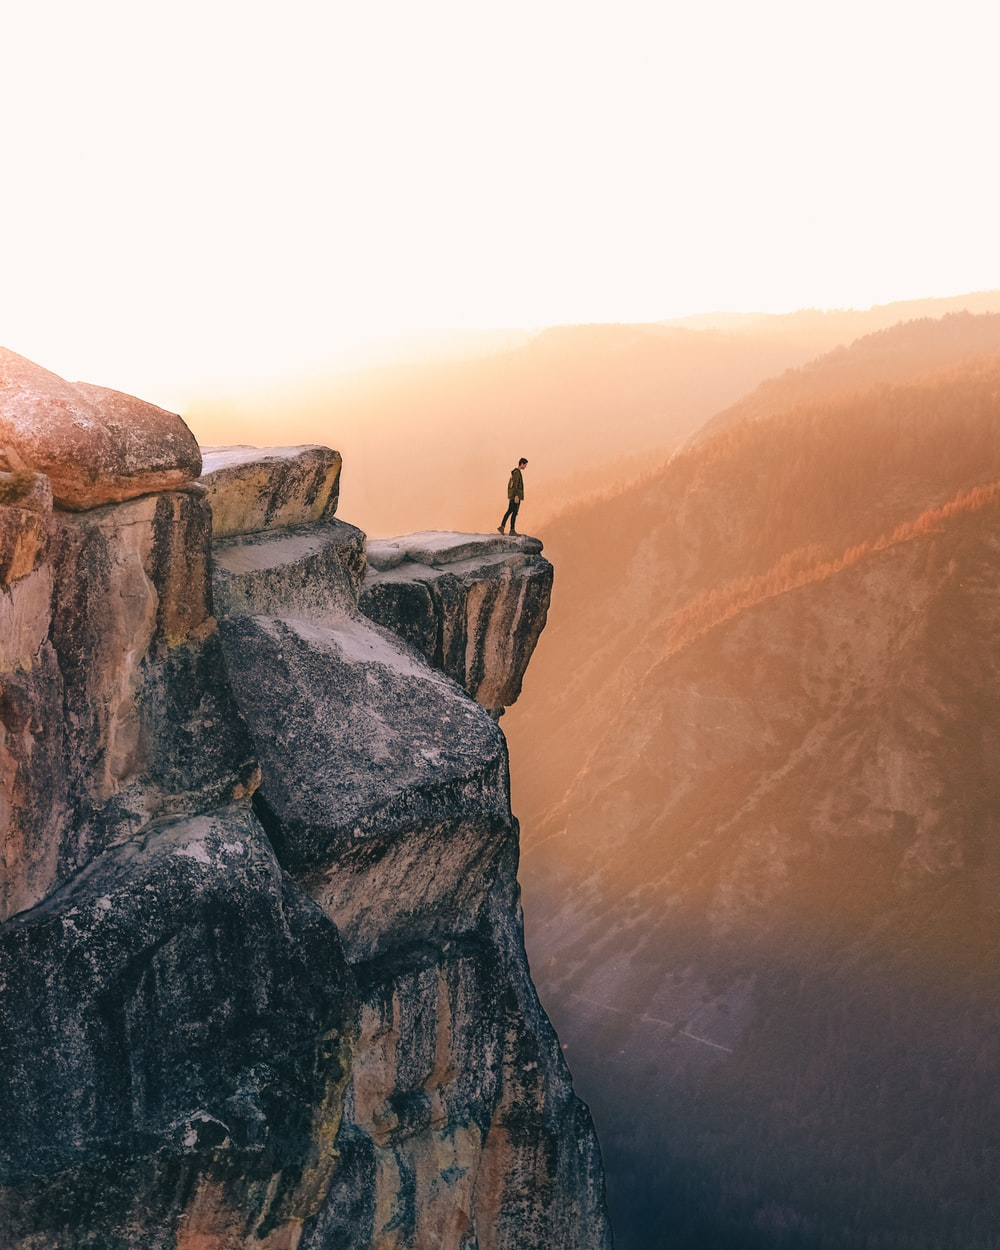 27 Cliff Pictures Download Images Stock Photos on Unsplash 1000x1250